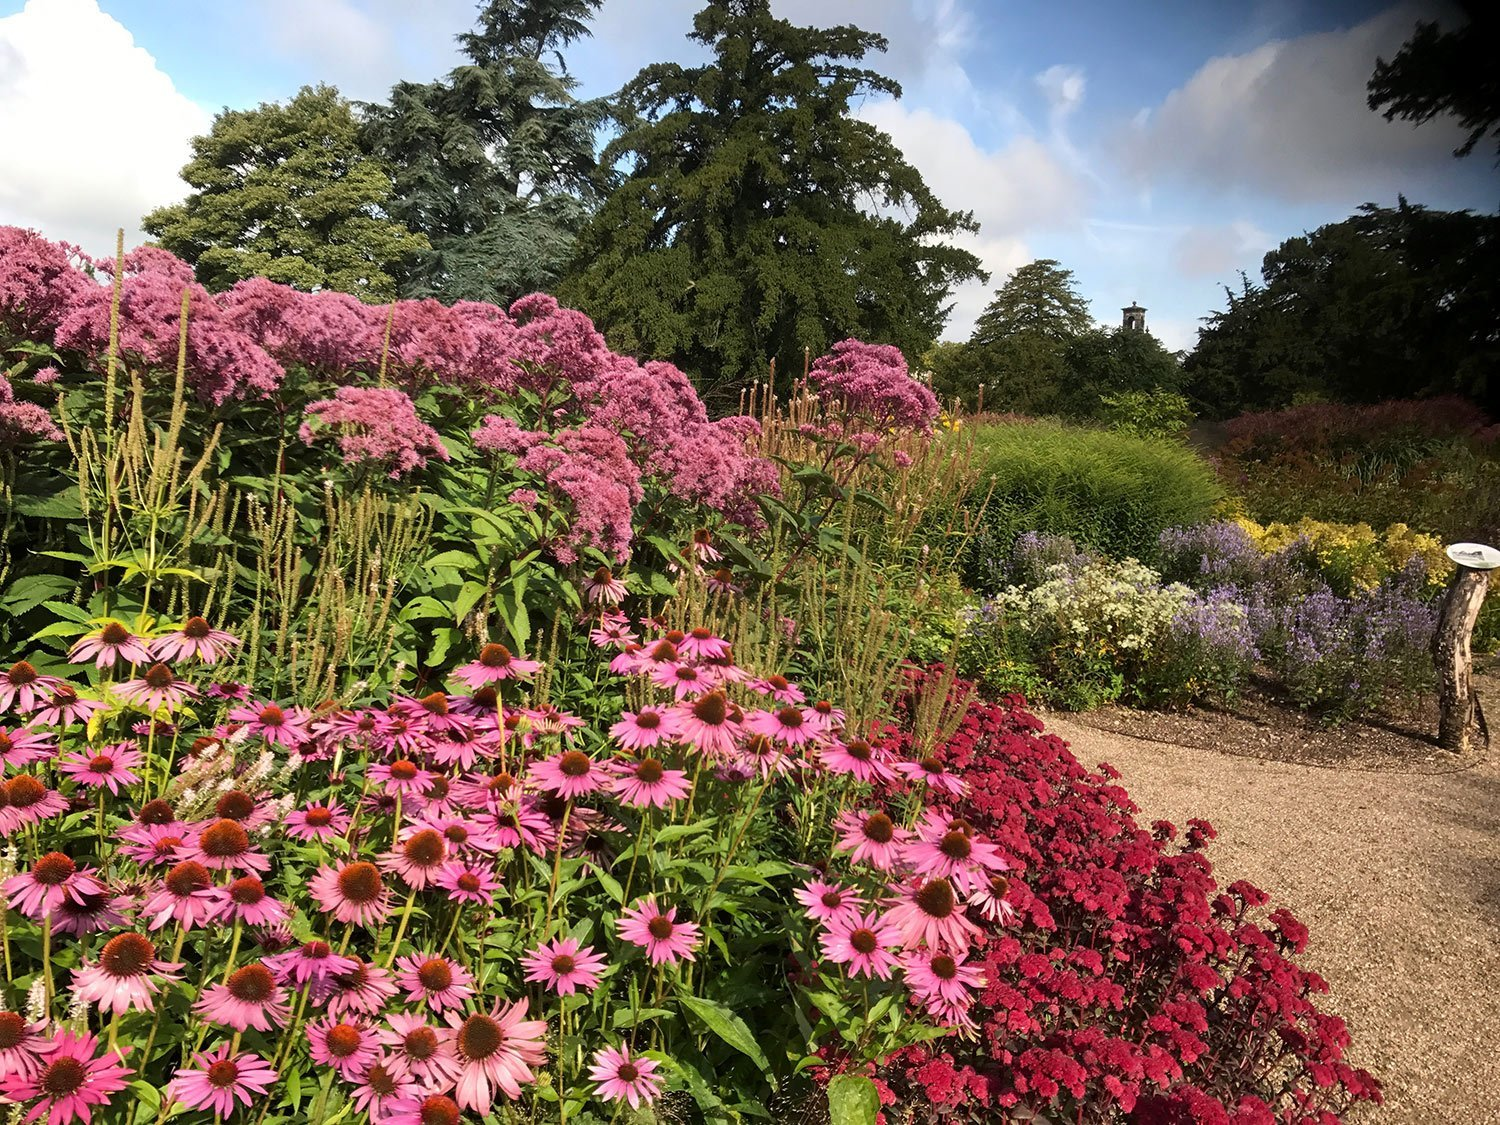 Prairie-style naturalistic planting, by Piet Ooudolf at Trentham Gardens